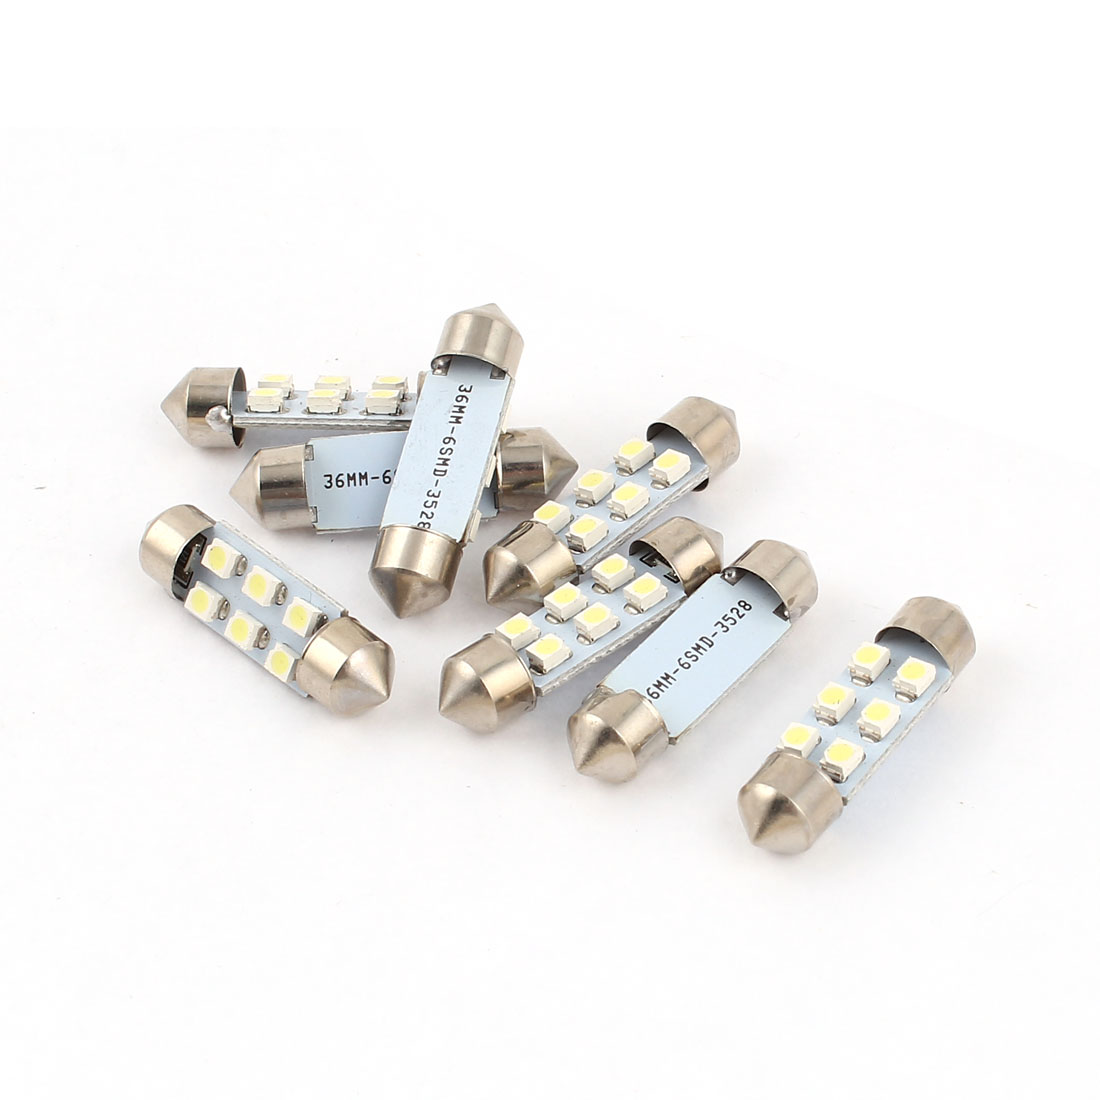 "8 pcs 36mm 1.4"" 3528 1210 SMD 6-LED Festoon Dome Light White DE3425 DE3423 C5W Internal"